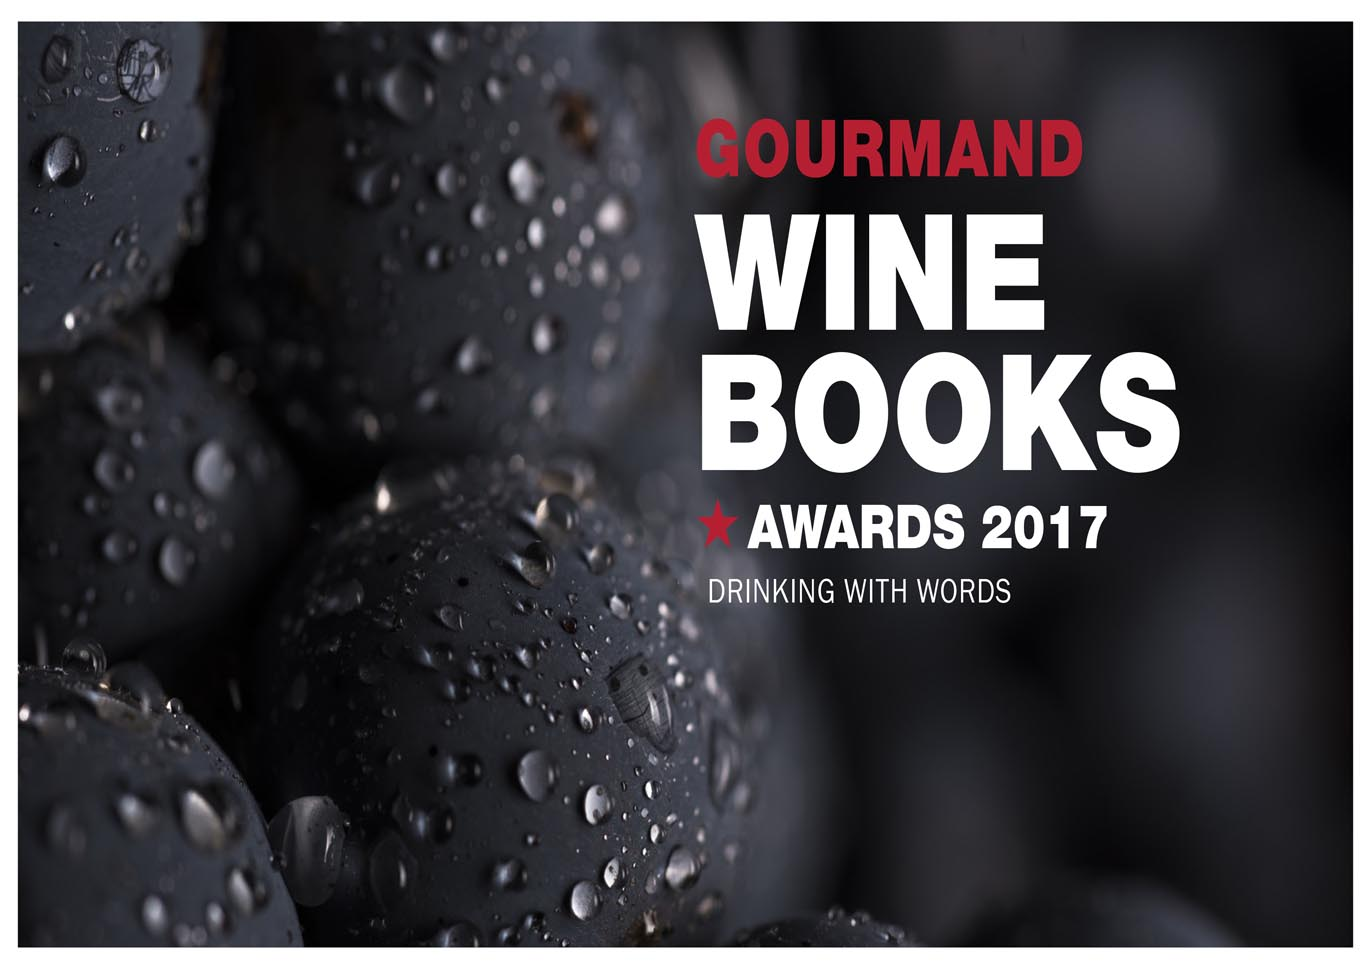 gourmand winebook awards winners 2017